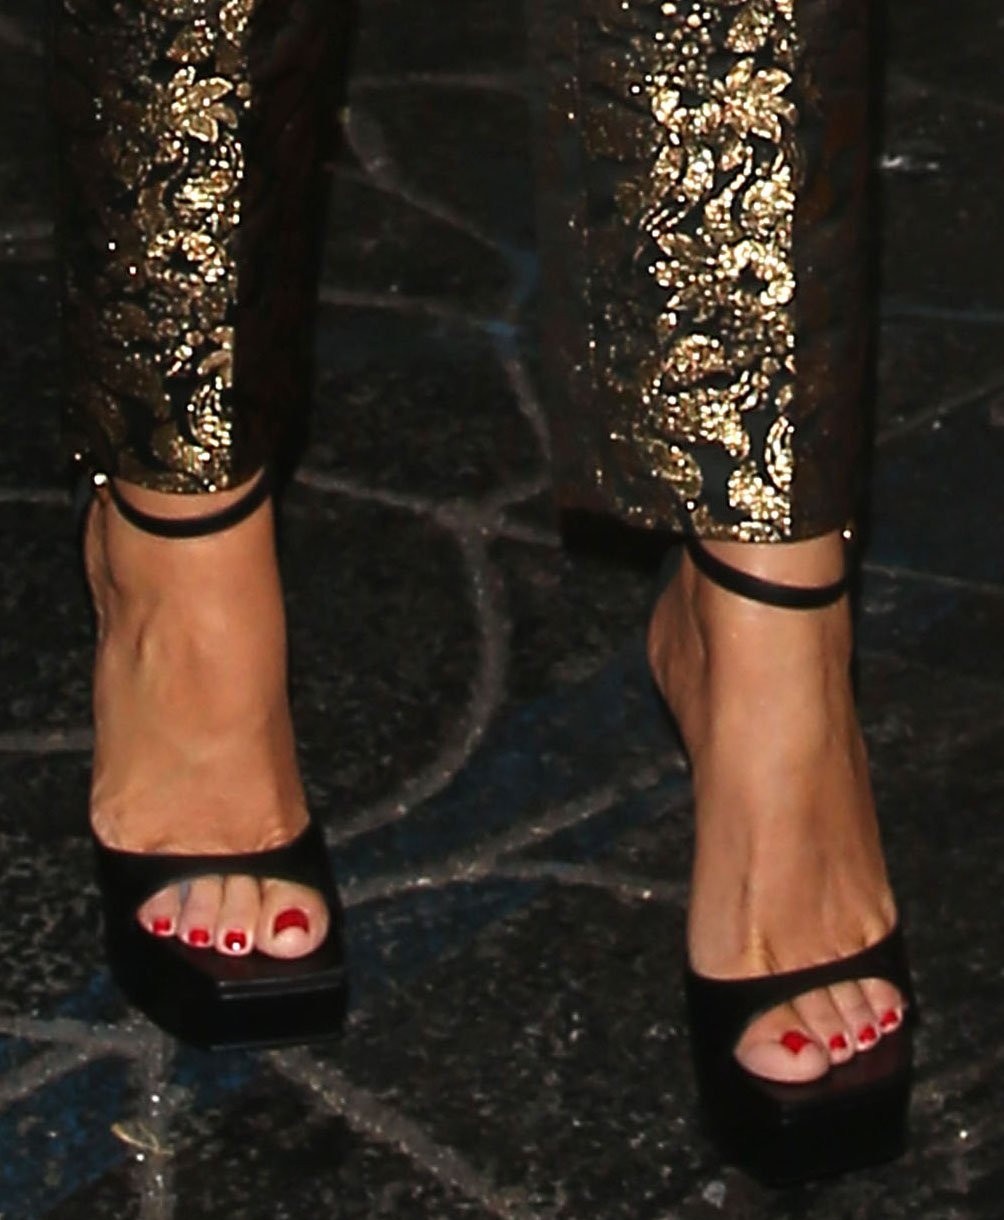 Sofia Vergara teams her sexy outfit with towering platform heels from Versace